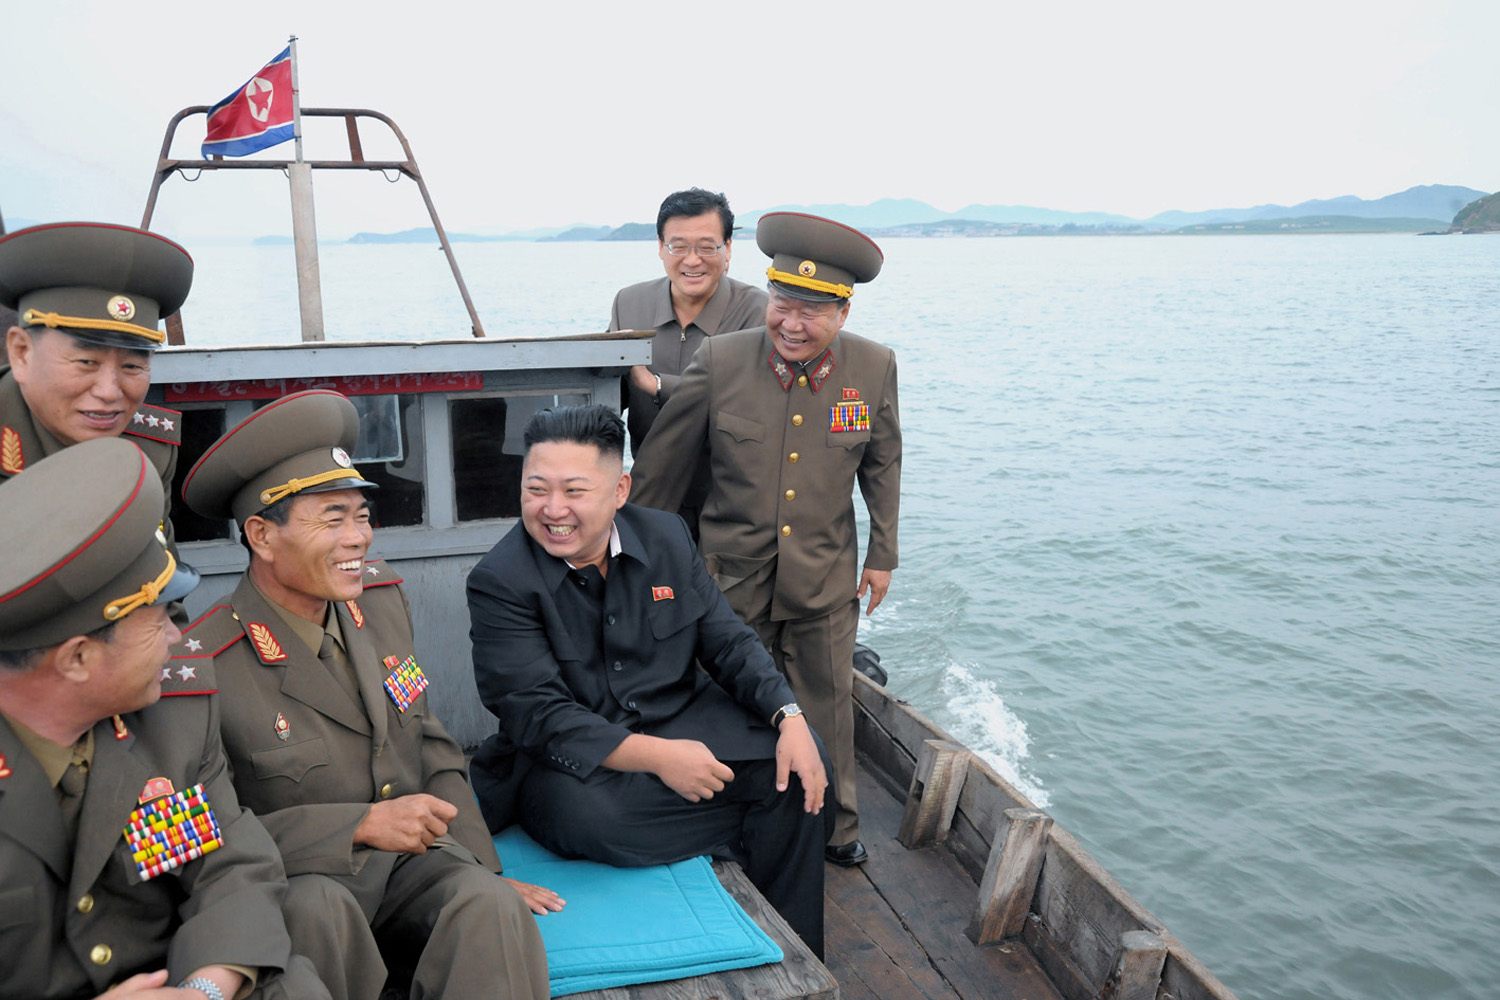 North Korean leader Kim Jong-Un (C) sits in a wooden boat with other soldiers as he visits military units on islands in the most southwest of Pyongyang in this picture released by the North's official KCNA news agency in Pyongyang August 19, 2012.